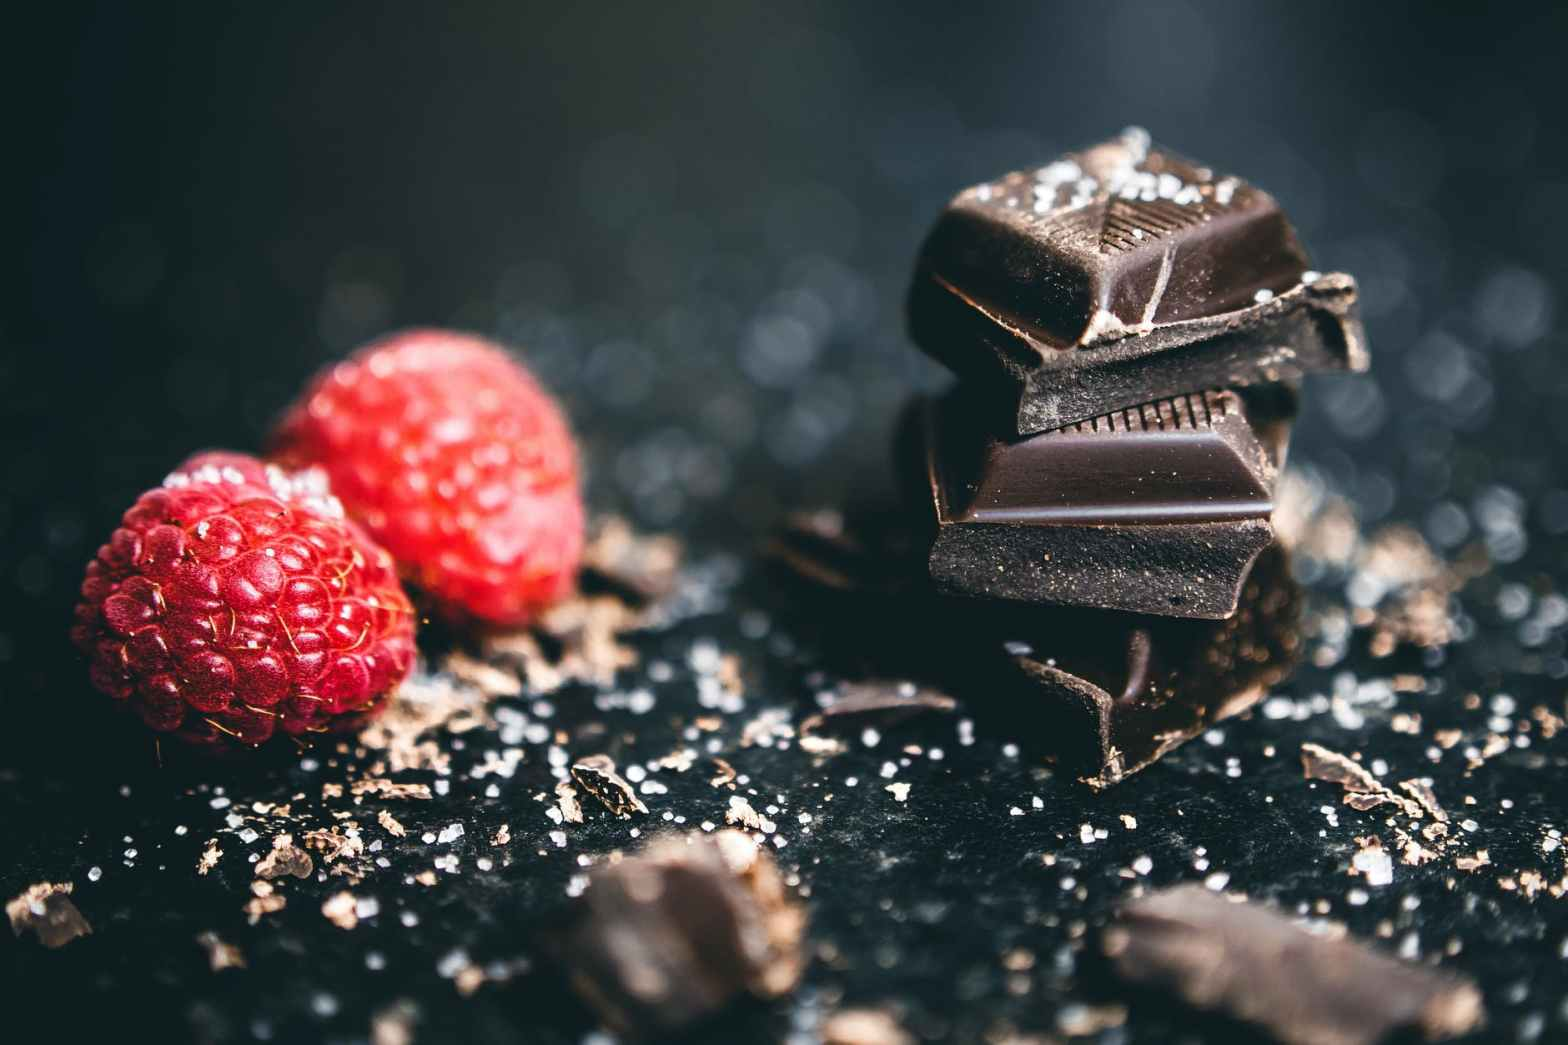 Palm Oil Free Chocolate and Confectionery